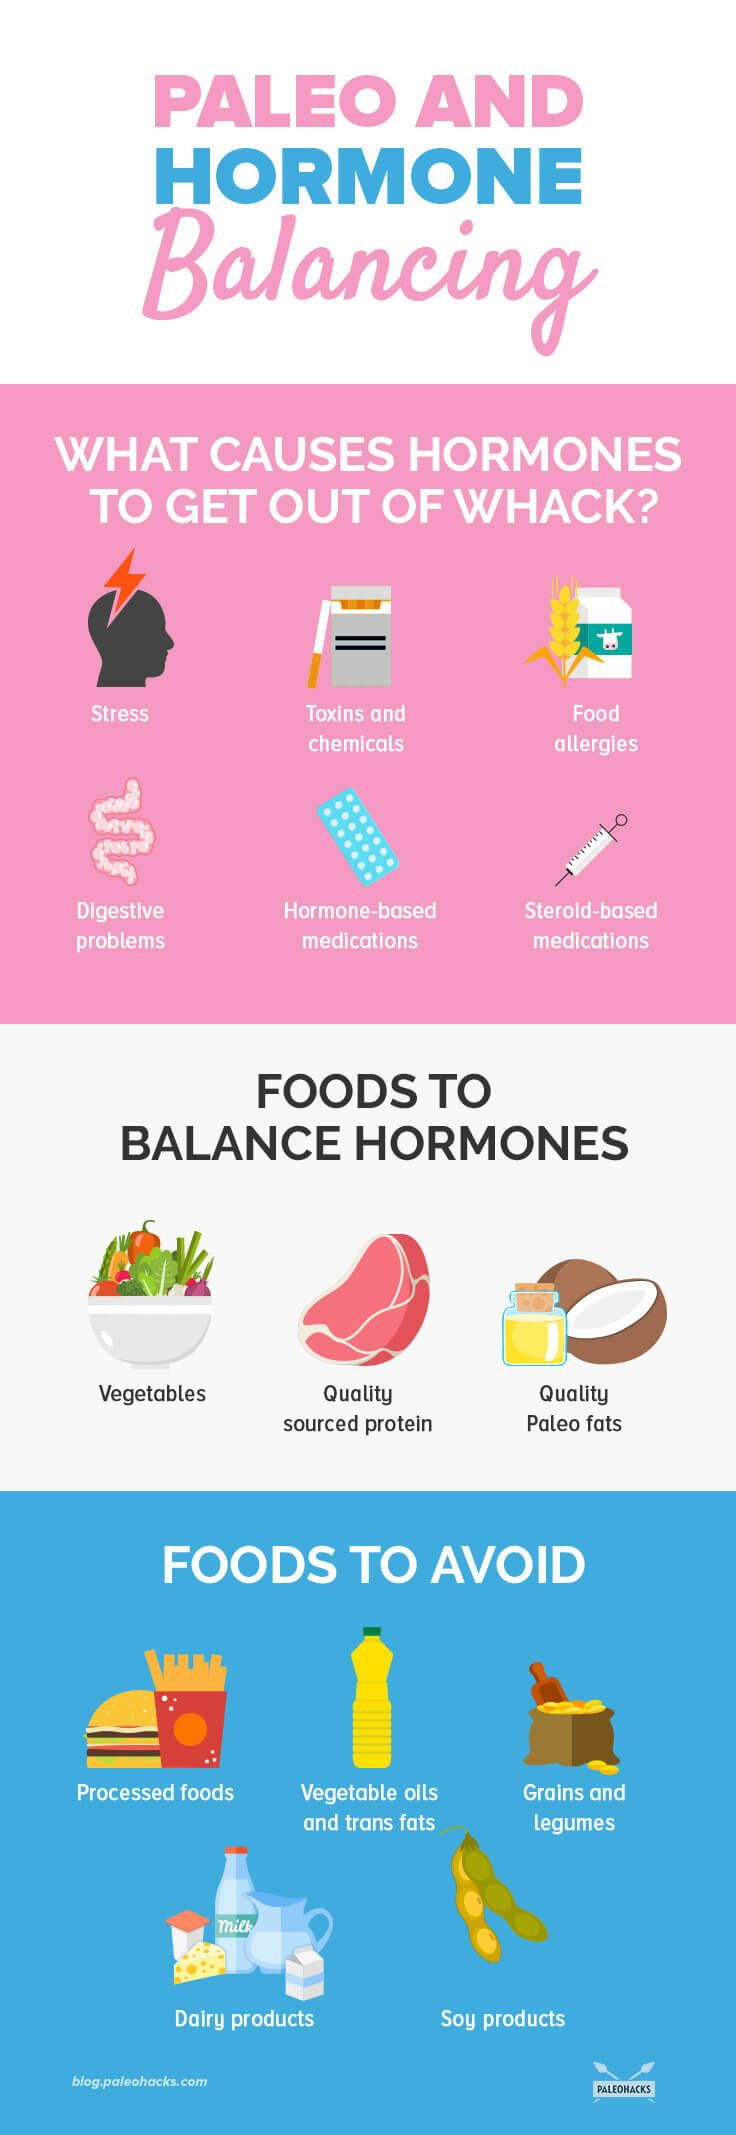 We have lots of hormones operating within our bodies, but some have a bigger impact than others. Here is an introduction to the four most influential hormones, and the importance of hormone balancing. Read the article here: http://paleo.co/hormonebalancing